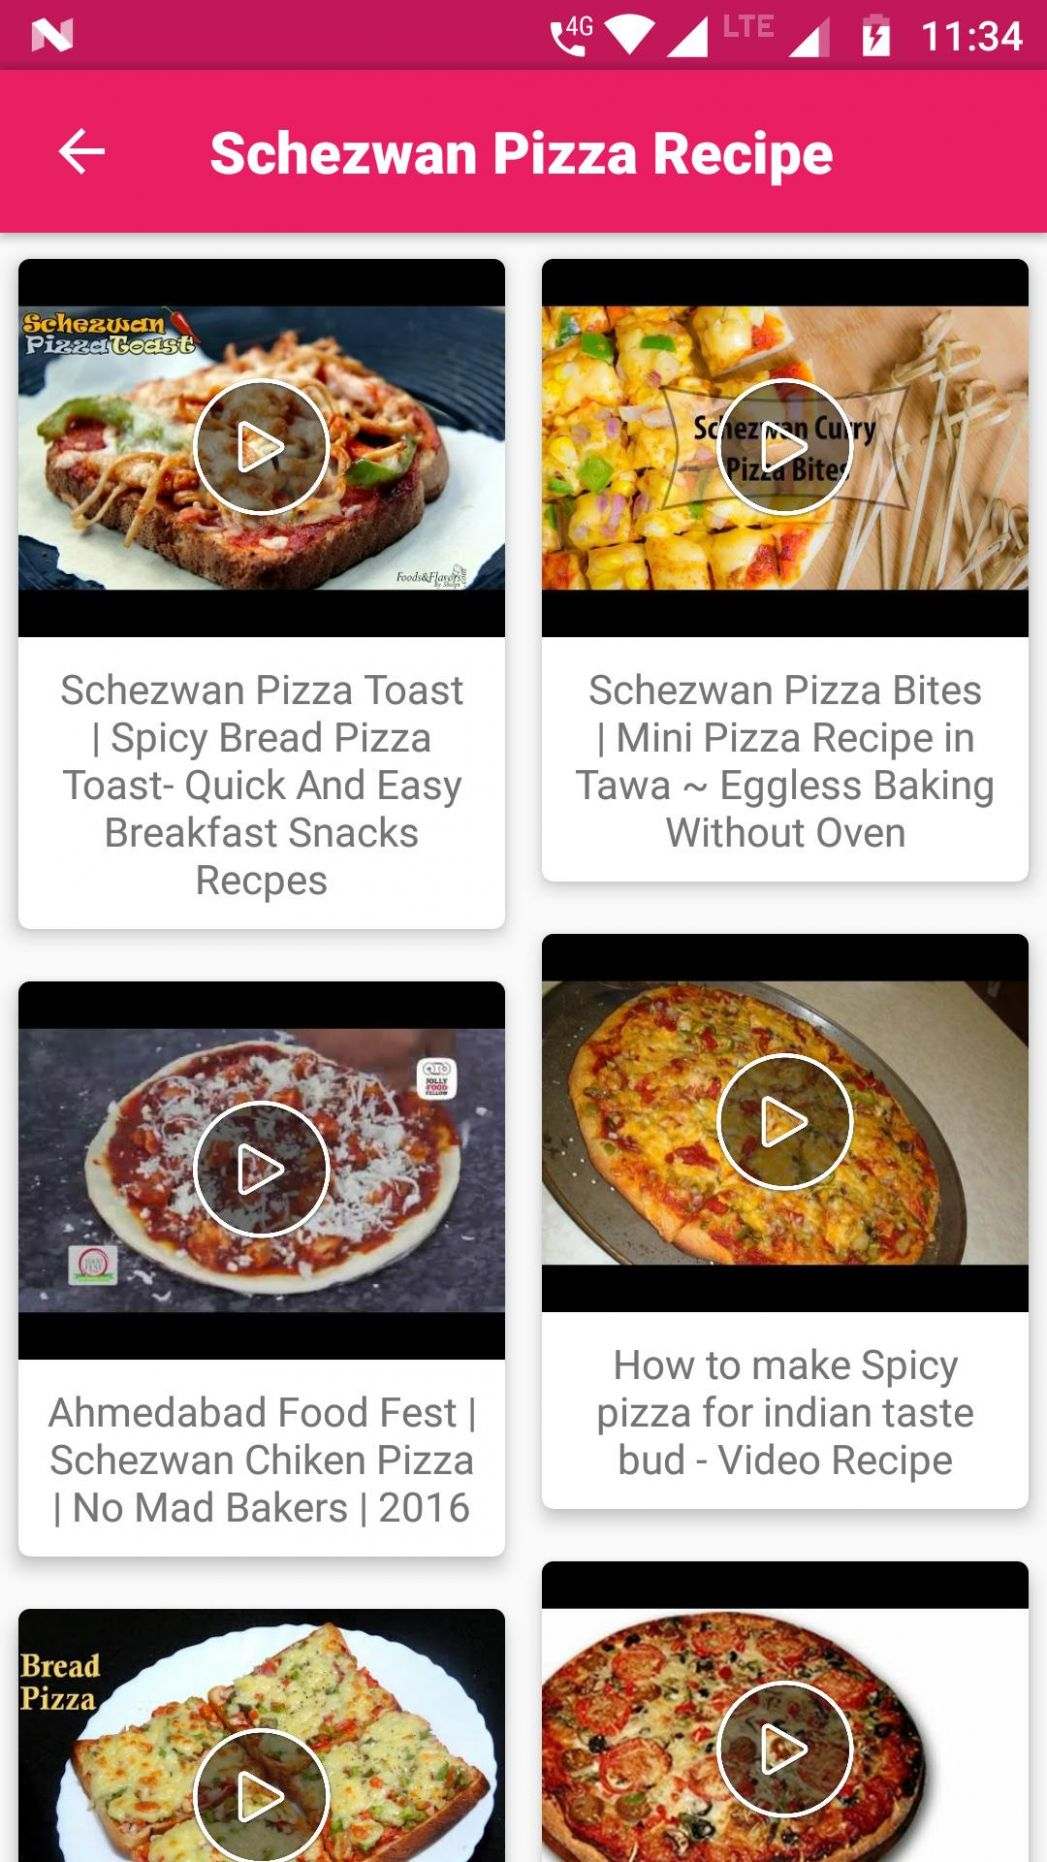 Pizza All Recipes Video (New + HD) for Android - APK Download - All Recipes Pizza Recipe